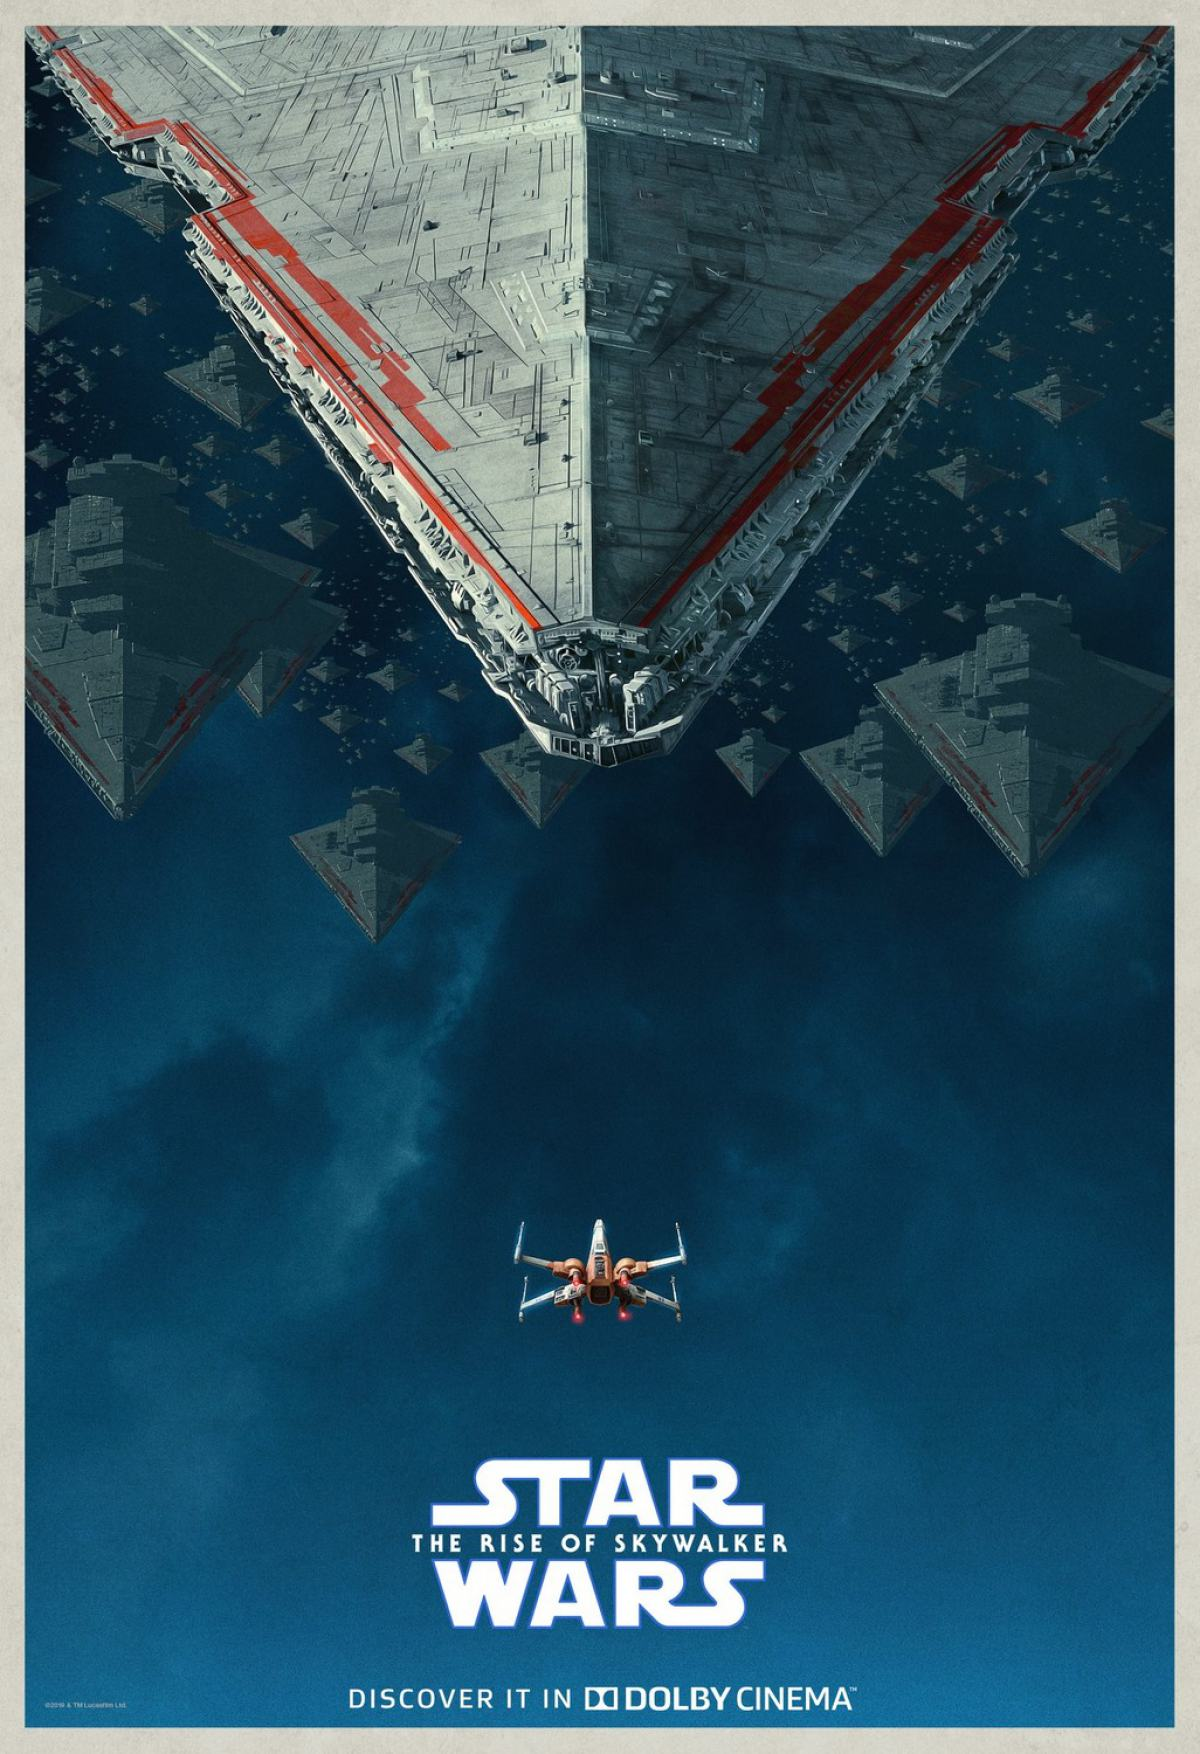 Star Wars: The Rise of Skywalker Poster #4